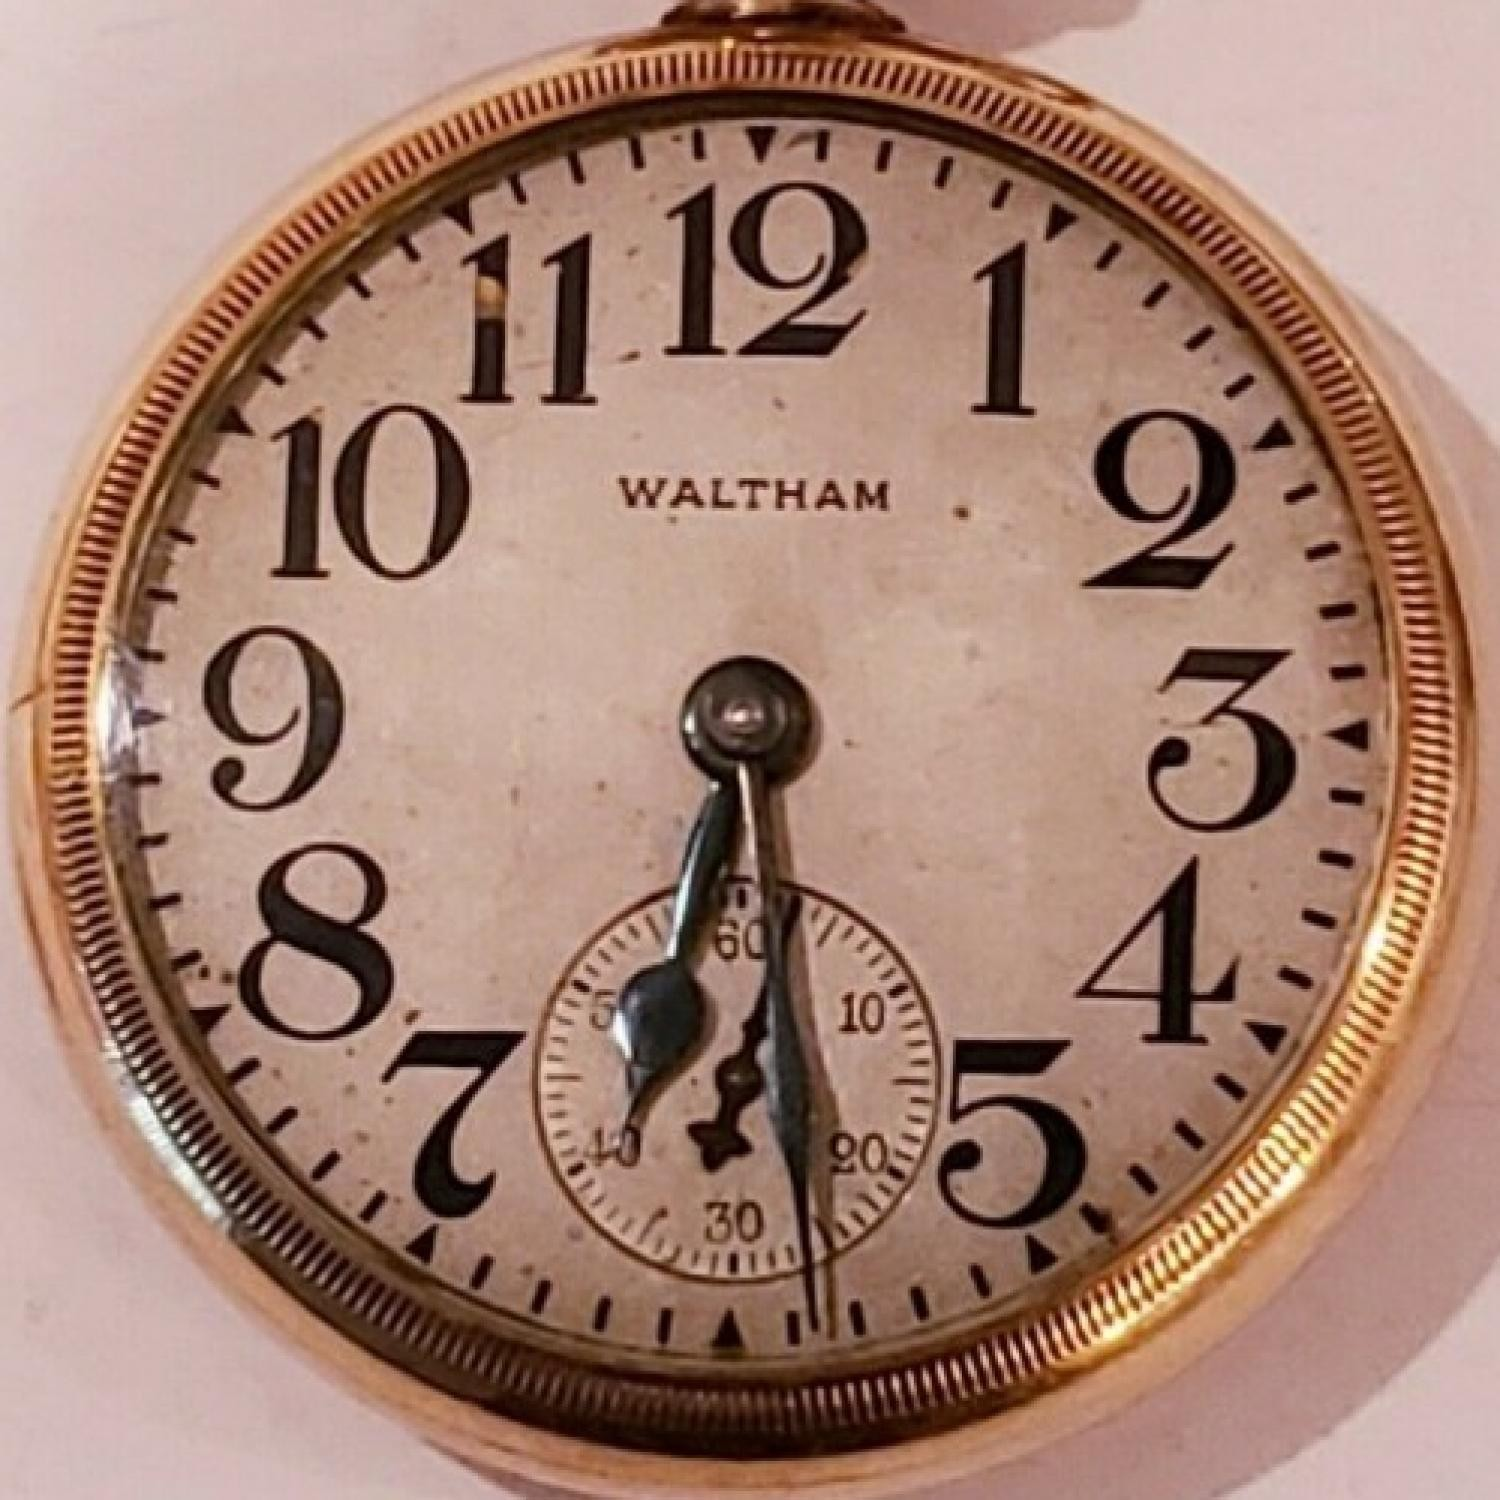 Image of Waltham Crescent St. #15062841 Dial